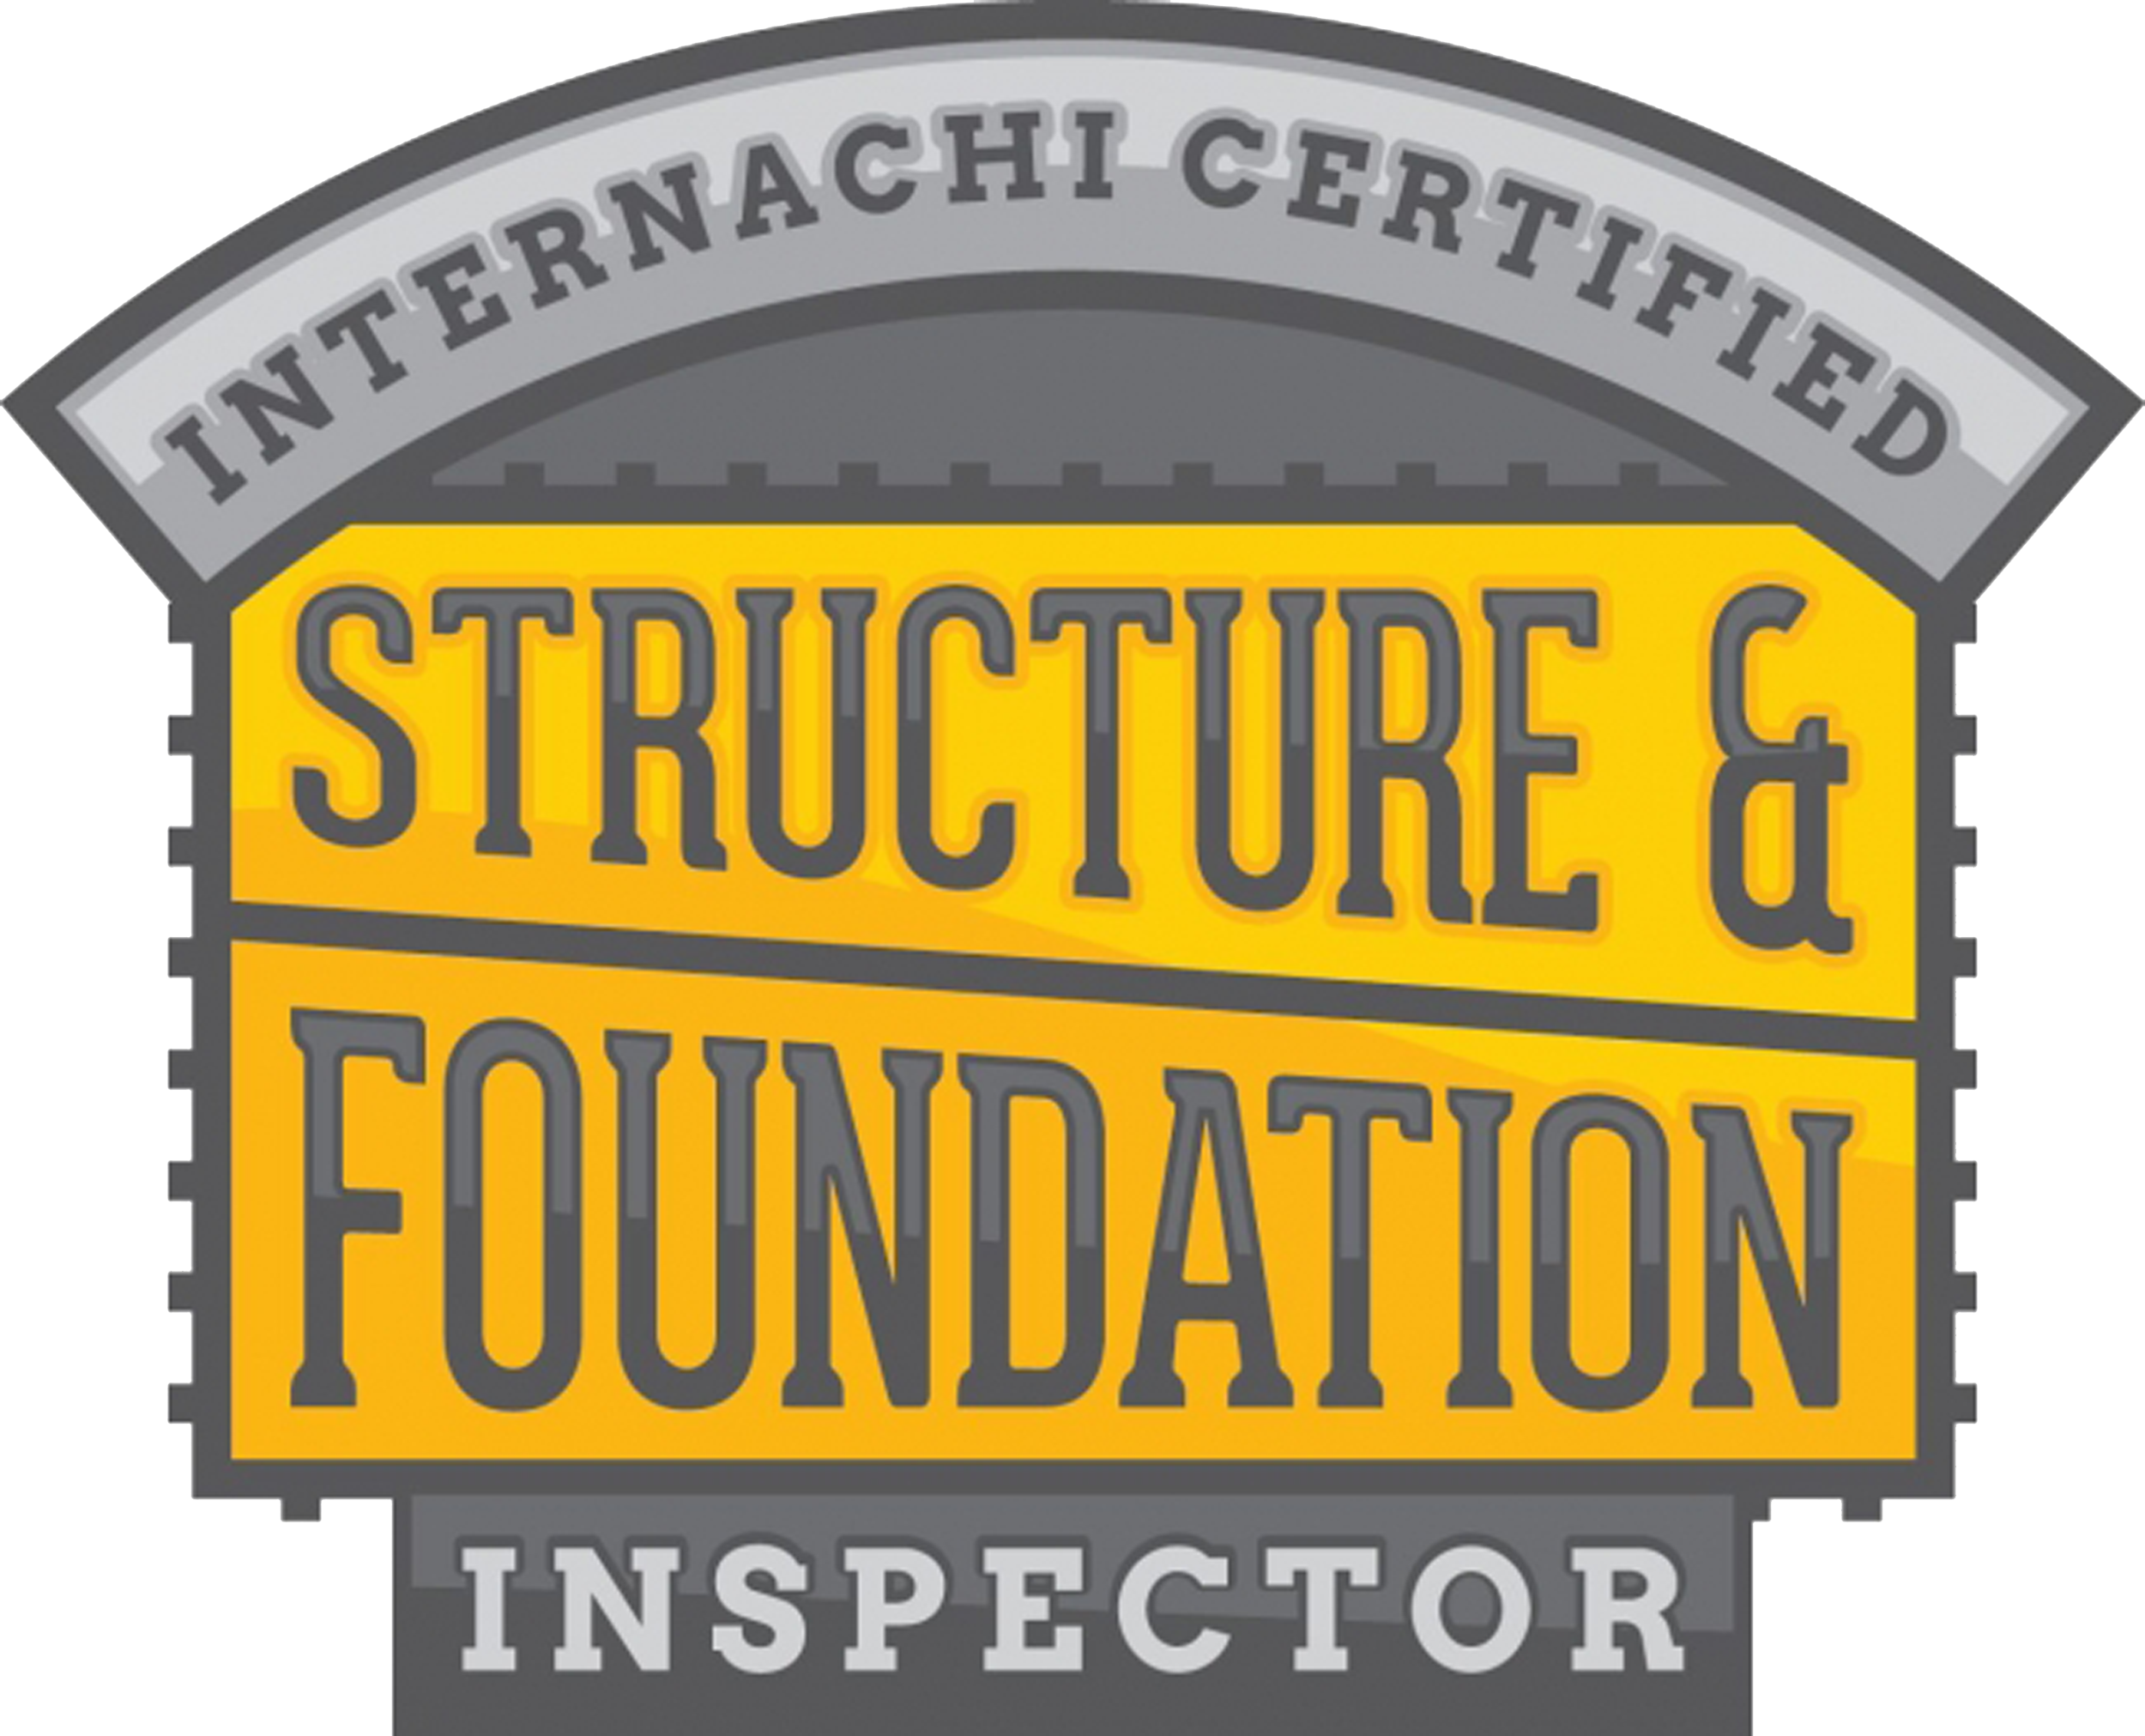 InterNACHI-Certified-Structure-Foundation-Inspector-JPG copy.png